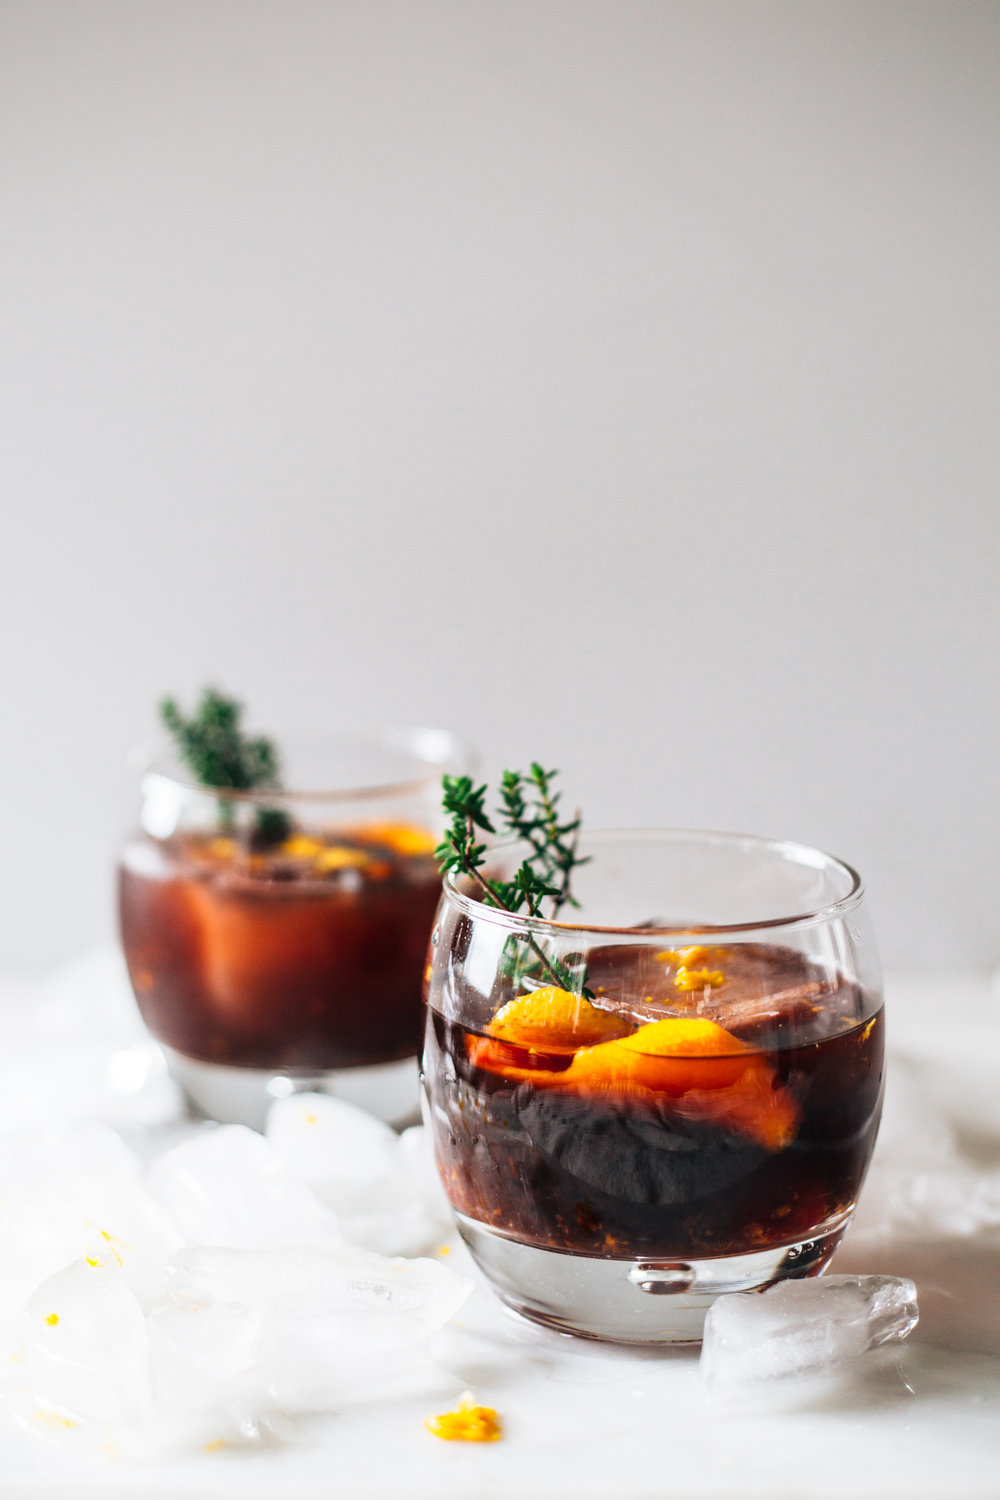 BlackCherryOldFashioned_quinnsplace-2.jpg